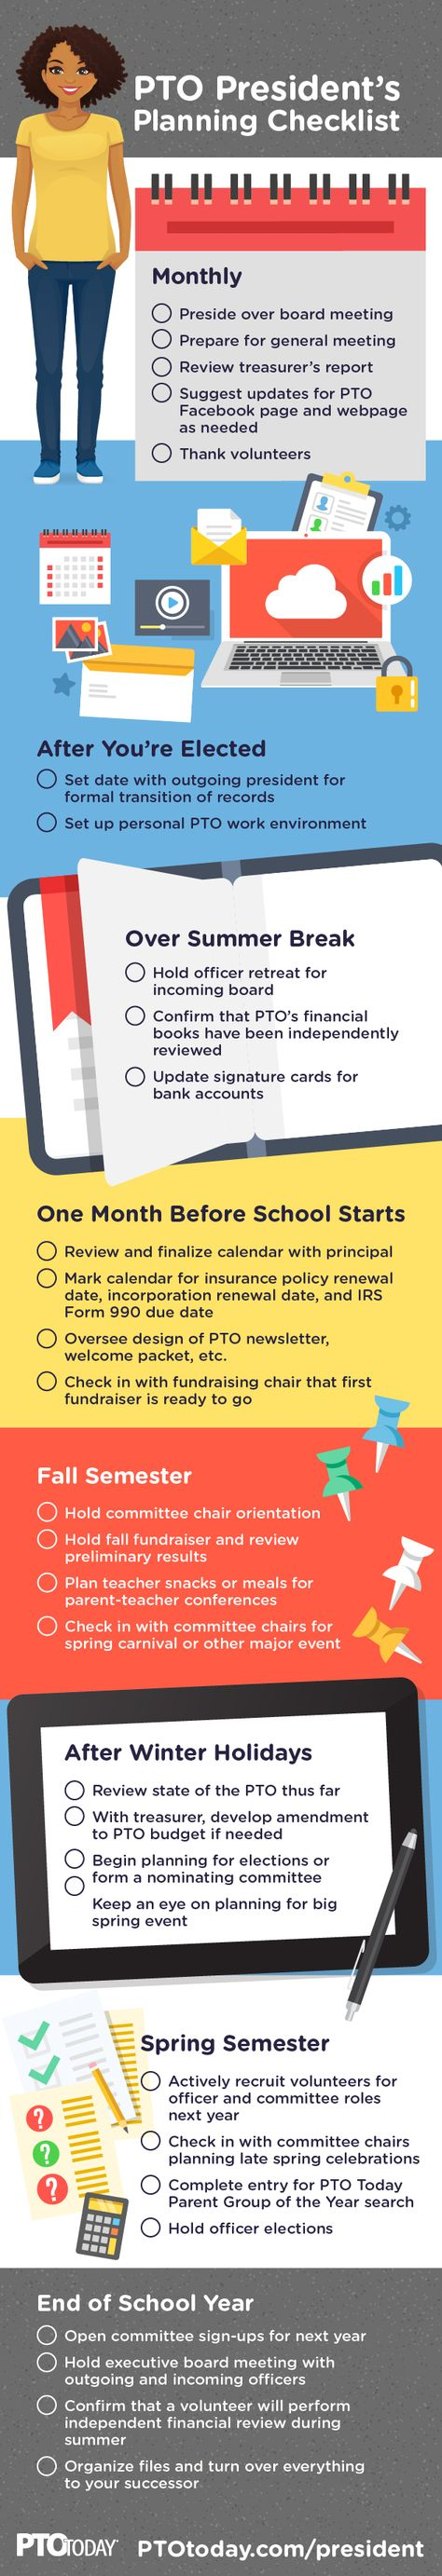 108 best pto ideas images on pinterest fundraisers fundraising 108 best pto ideas images on pinterest fundraisers fundraising and fundraising ideas falaconquin